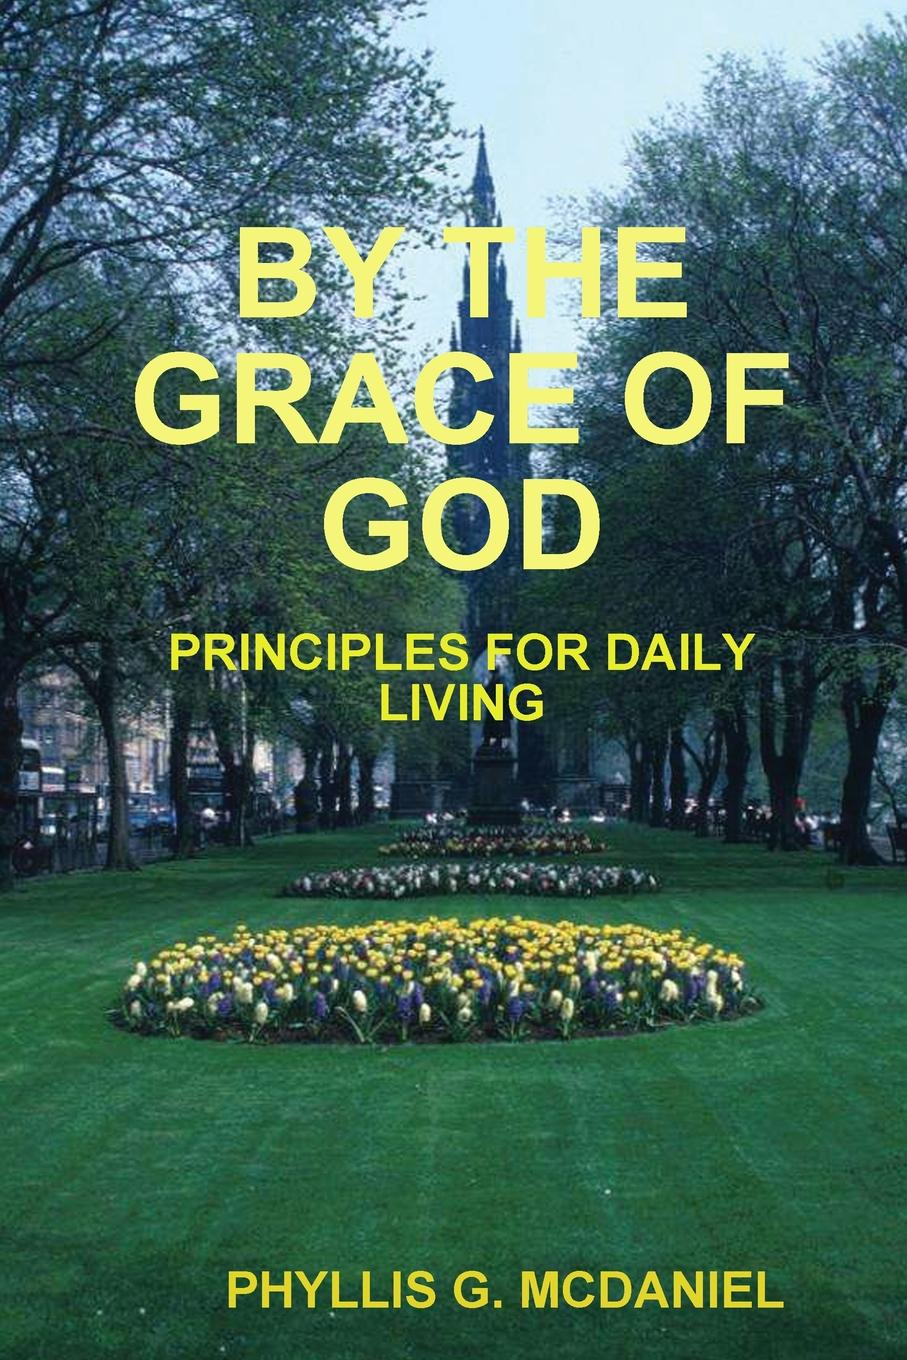 Фото - PHYLLIS G. MCDANIEL BY THE GRACE OF GOD. PRINCIPLES FOR DAILY LIVING phyllis g mcdaniel life or death a detective bendix mystery v